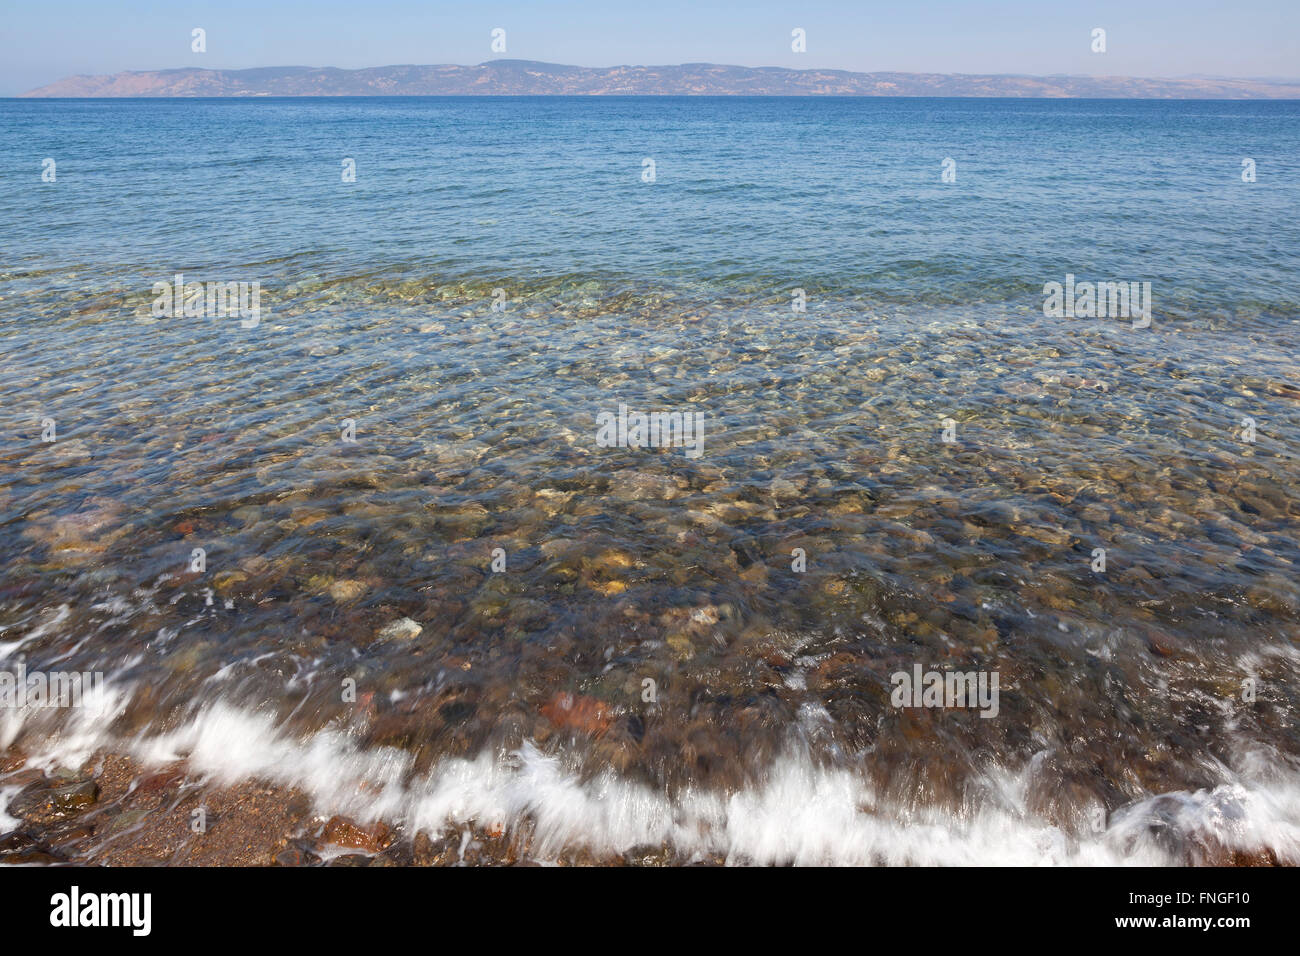 Clear sea water waves washing over pebbles in the Aegean Sea - Stock Image